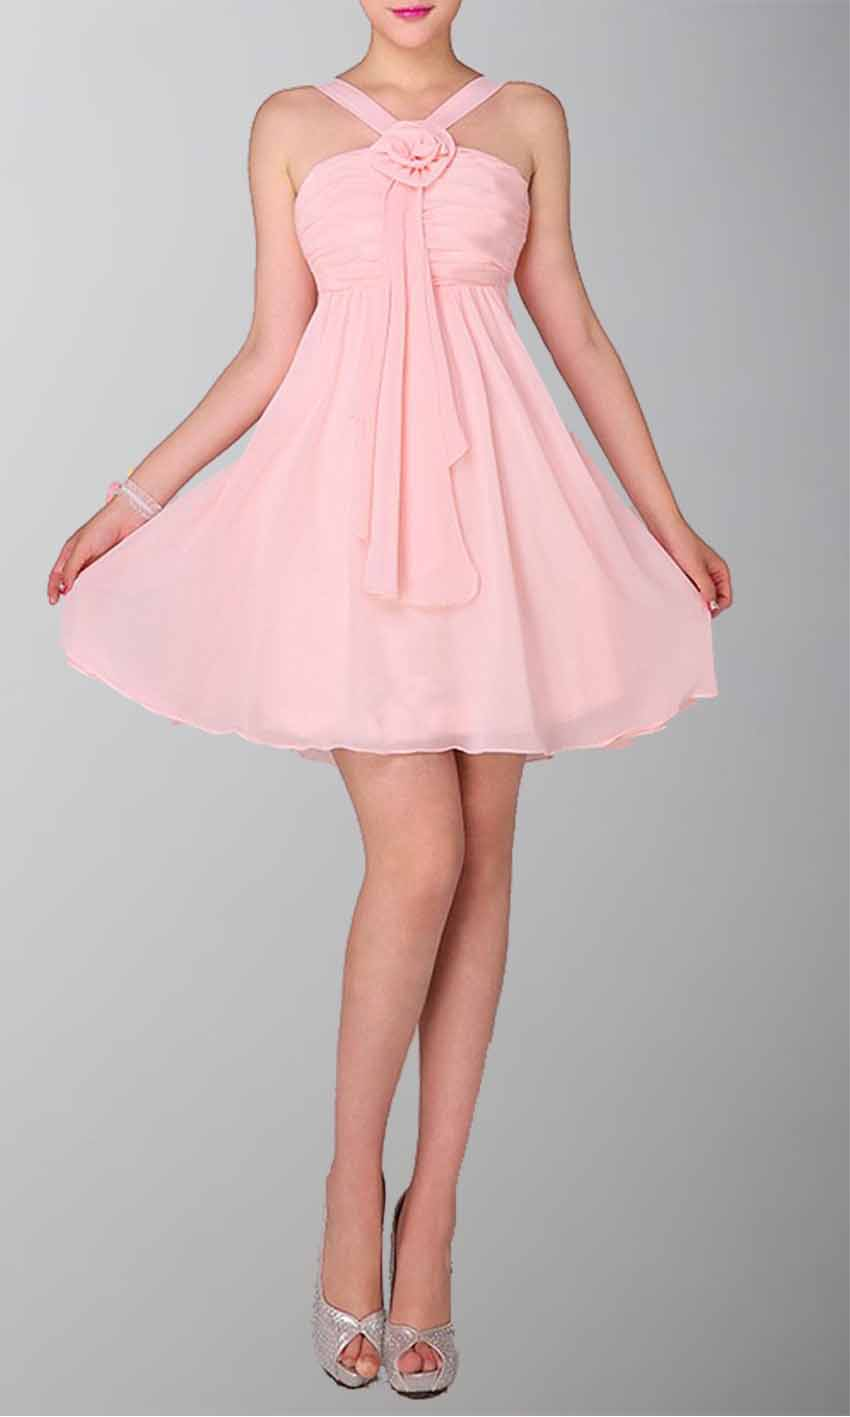 Exquisite Halter Neck Short Bridesmaid Dress KSP087 [KSP087] - £75.00 : Cheap Prom Dresses Uk, Bridesmaid Dresses, 2014 Prom & Evening Dresses, Look for cheap elegant prom dresses 2014, cocktail gowns, or dresses for special occasions? kissprom.co.uk offers various bridesmaid dresses, evening dress, free shipping to UK etc.